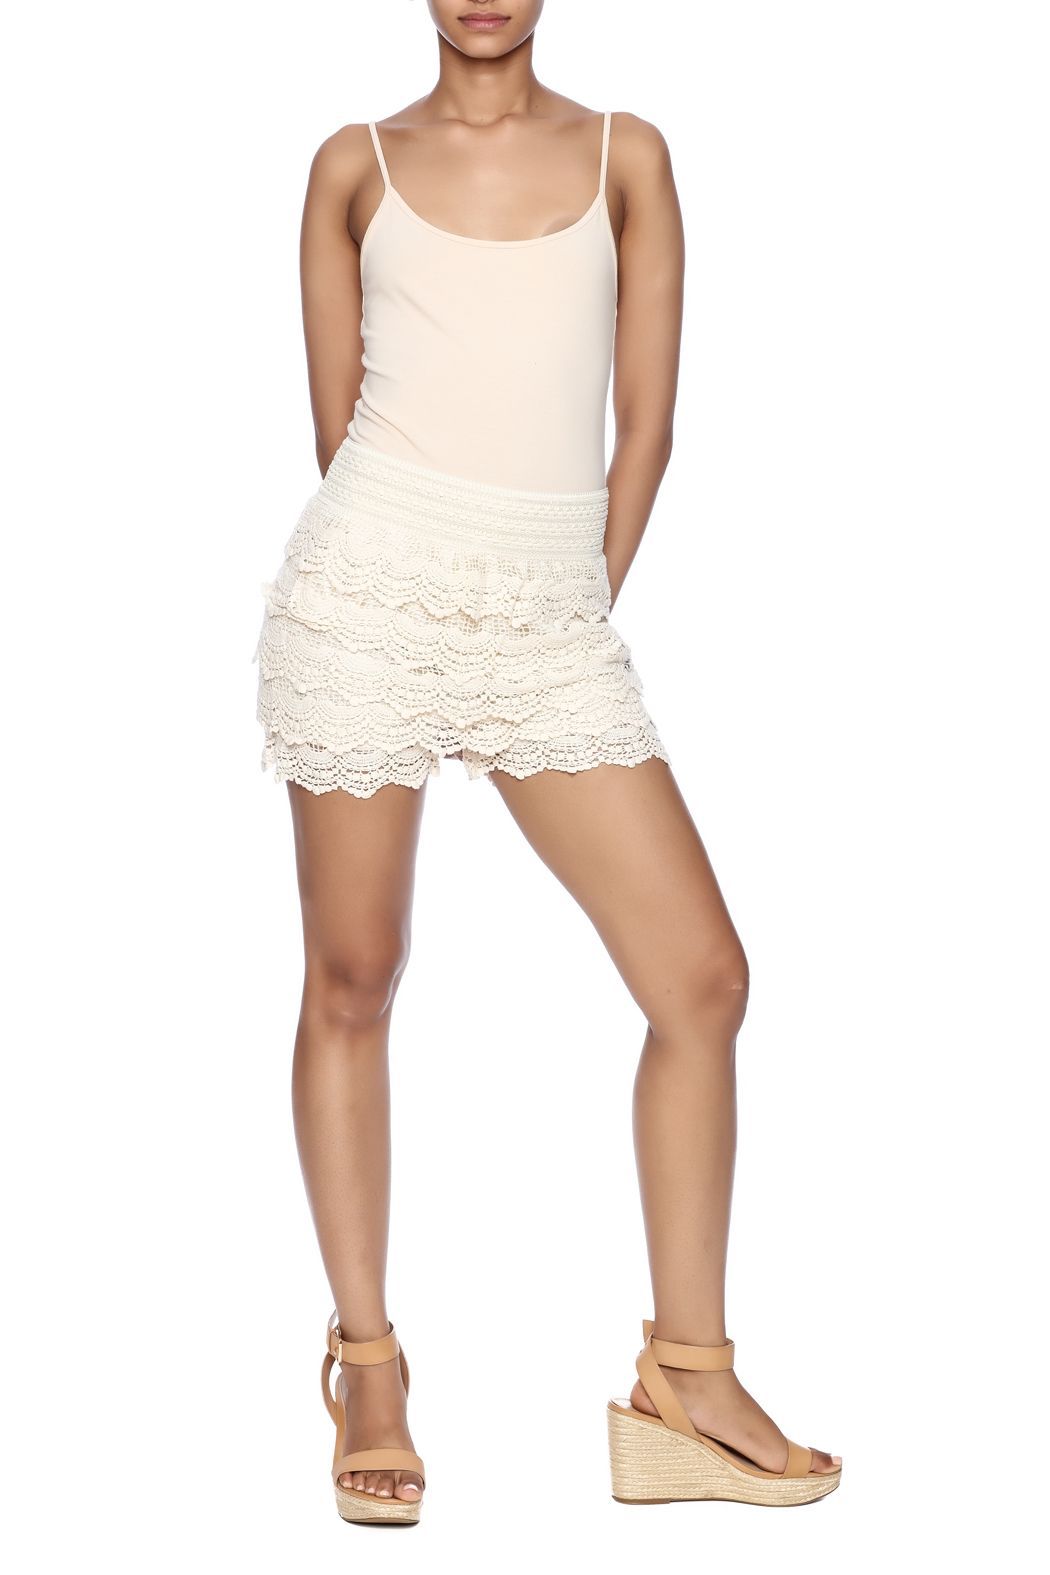 India Boutique Crochet Short - Front Full Image